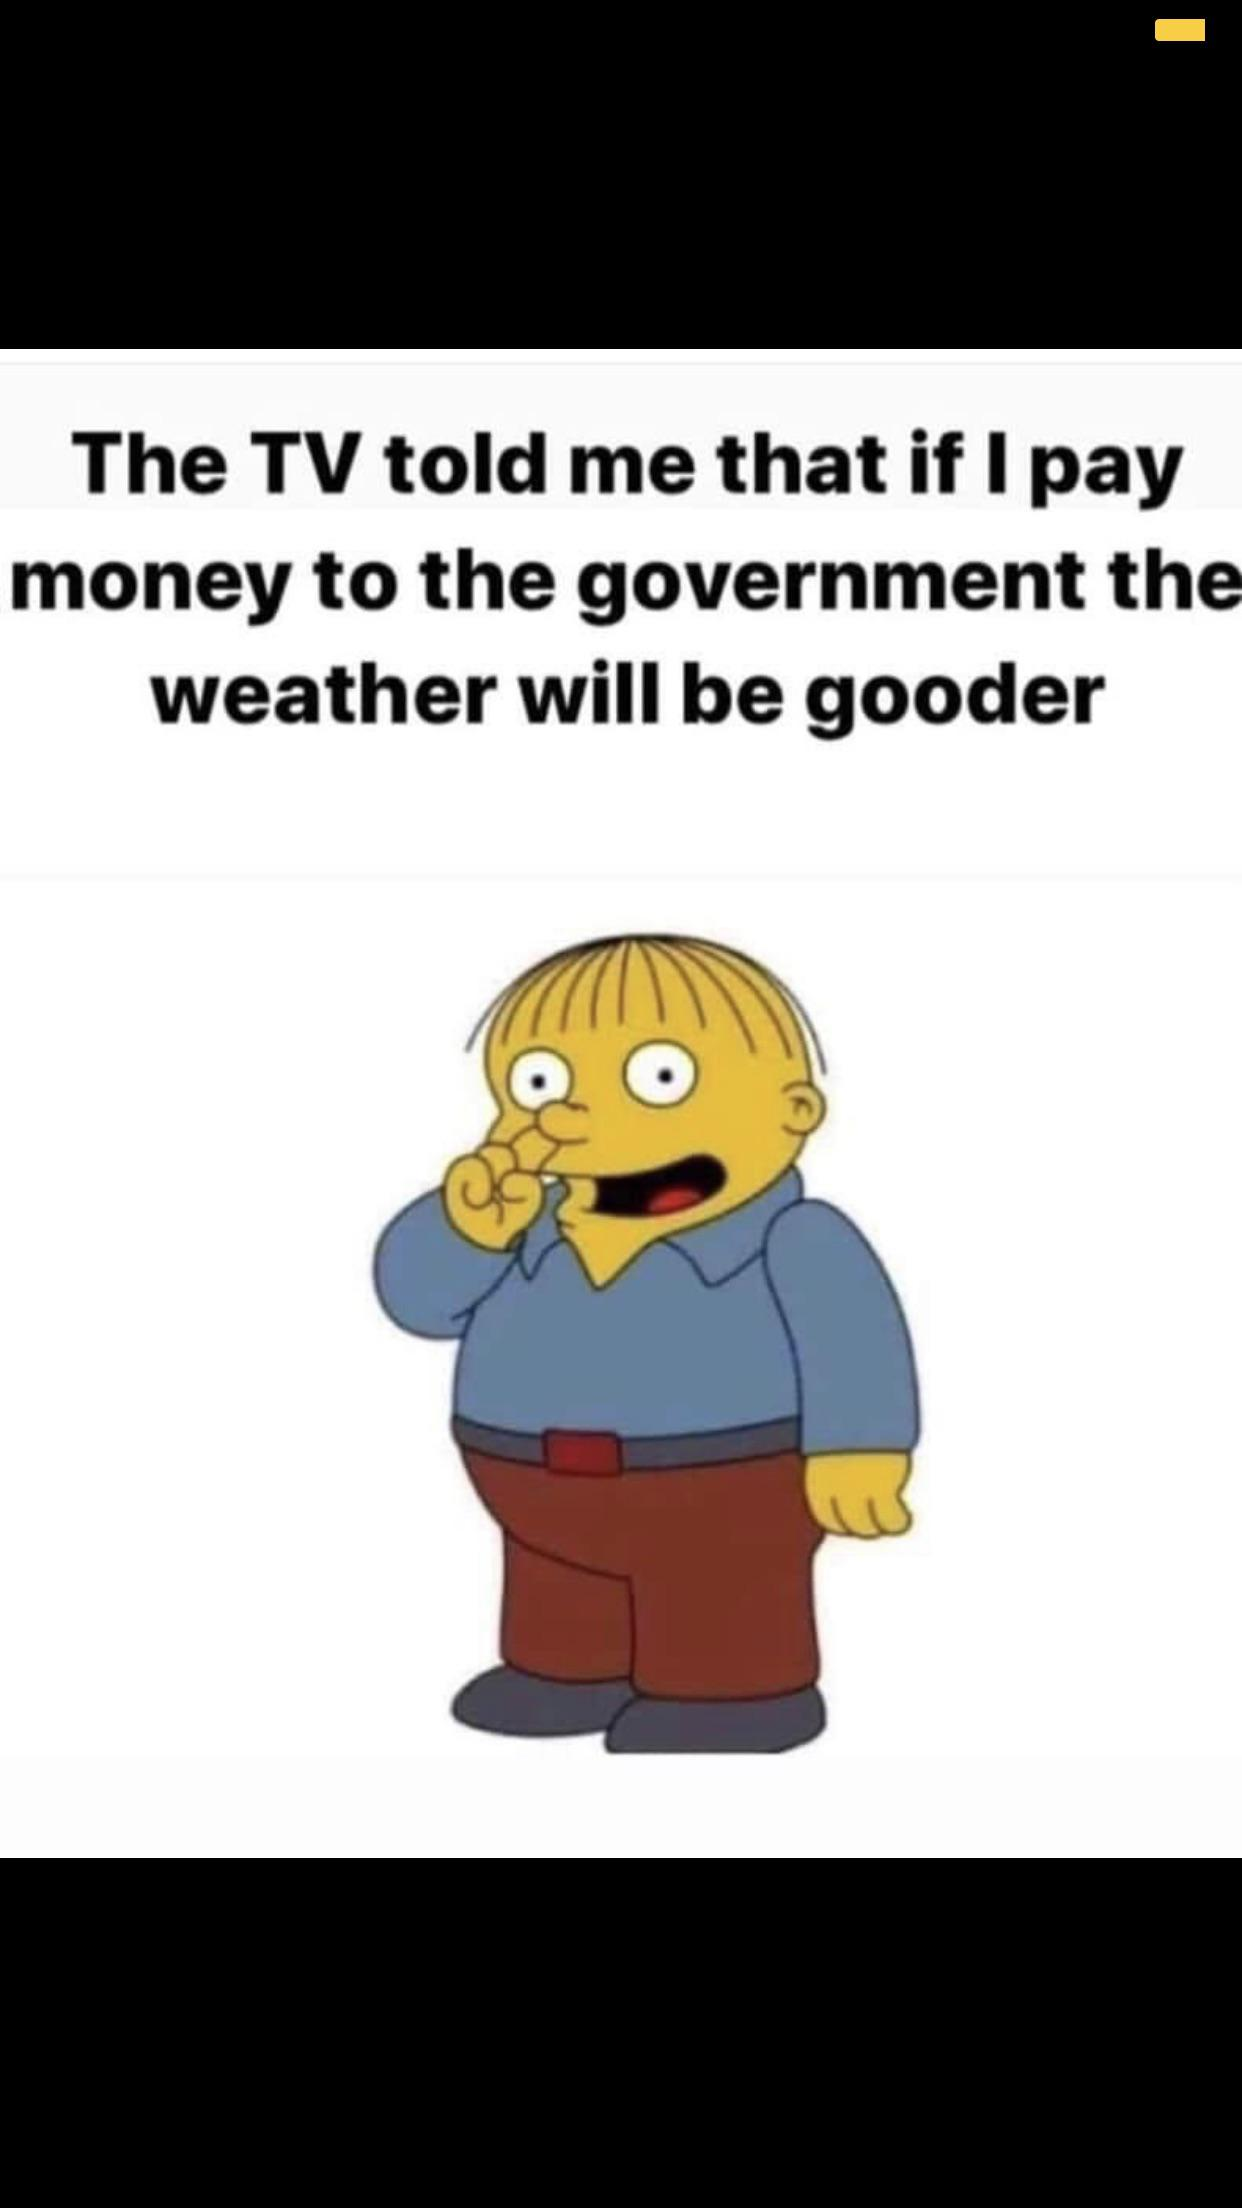 political political-memes political text: The TV told me that if I pay money to the government the weather will be gooder